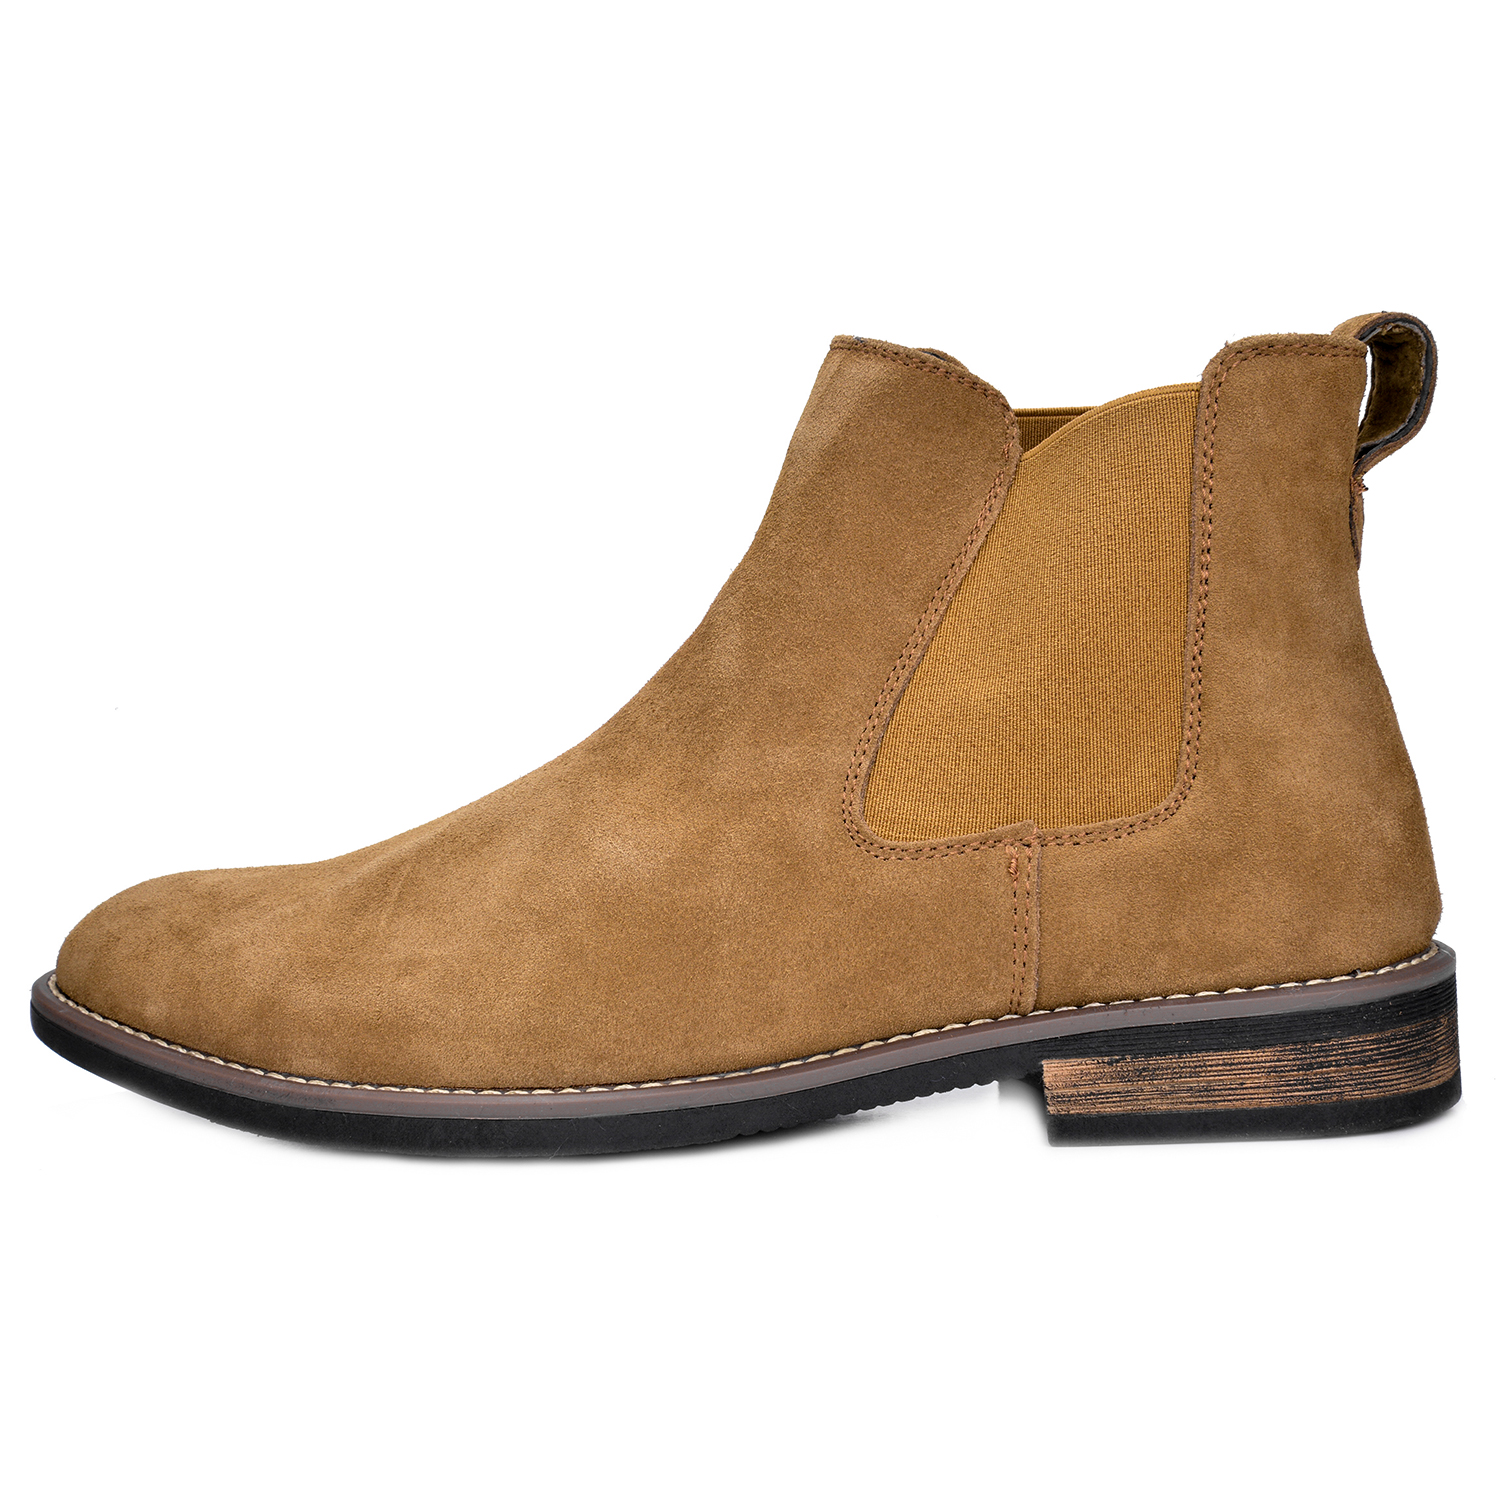 BRUNO-MARC-Men-URBAN-Suede-Leather-Chelsea-Chukka-Dress-Ankle-Boots-Casual-Shoes thumbnail 15